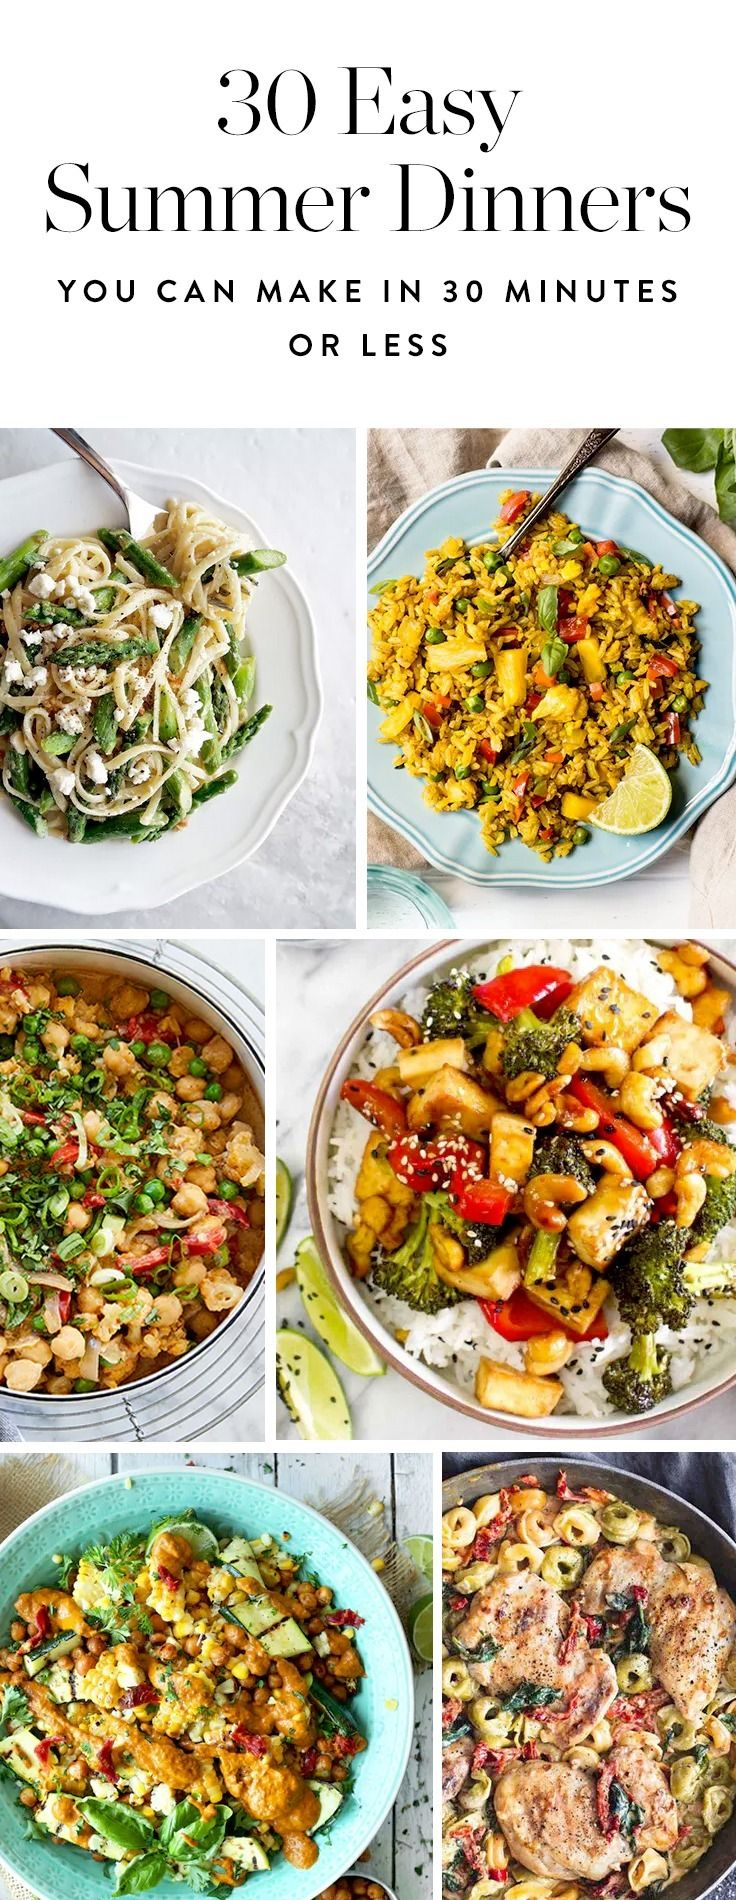 40 Quick Summer Dinners You Can Make in 30 Minutes or Less